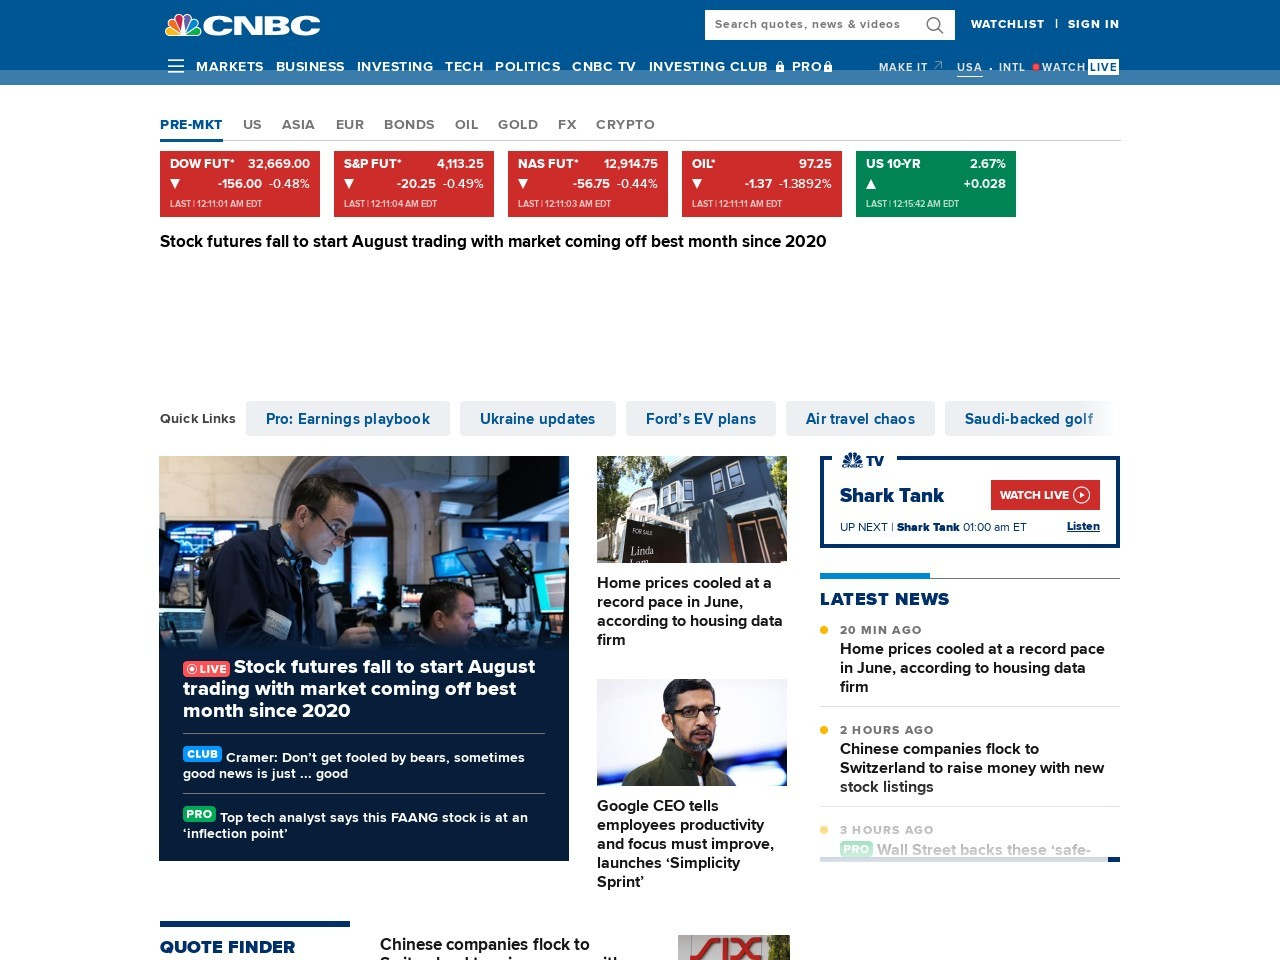 Stock Markets, Business News, Financials, Earnings - CNBC